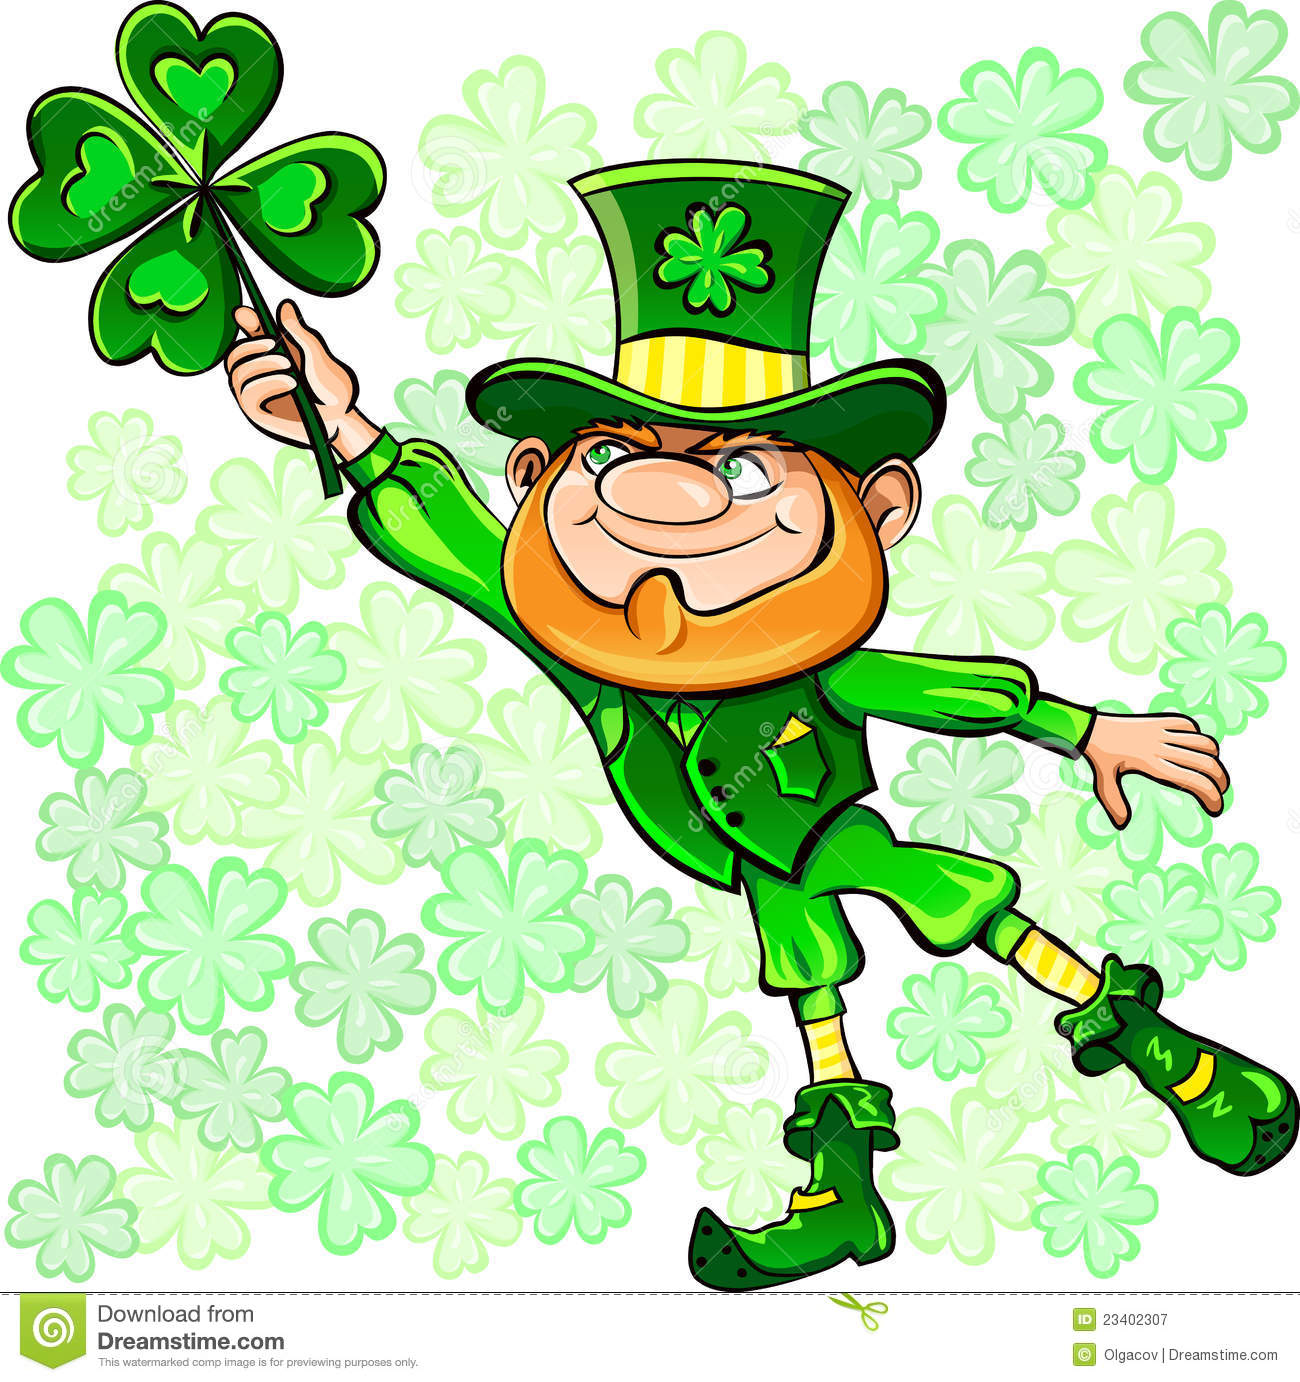 St. clover day Patricks pictures forecast to wear for on every day in 2019